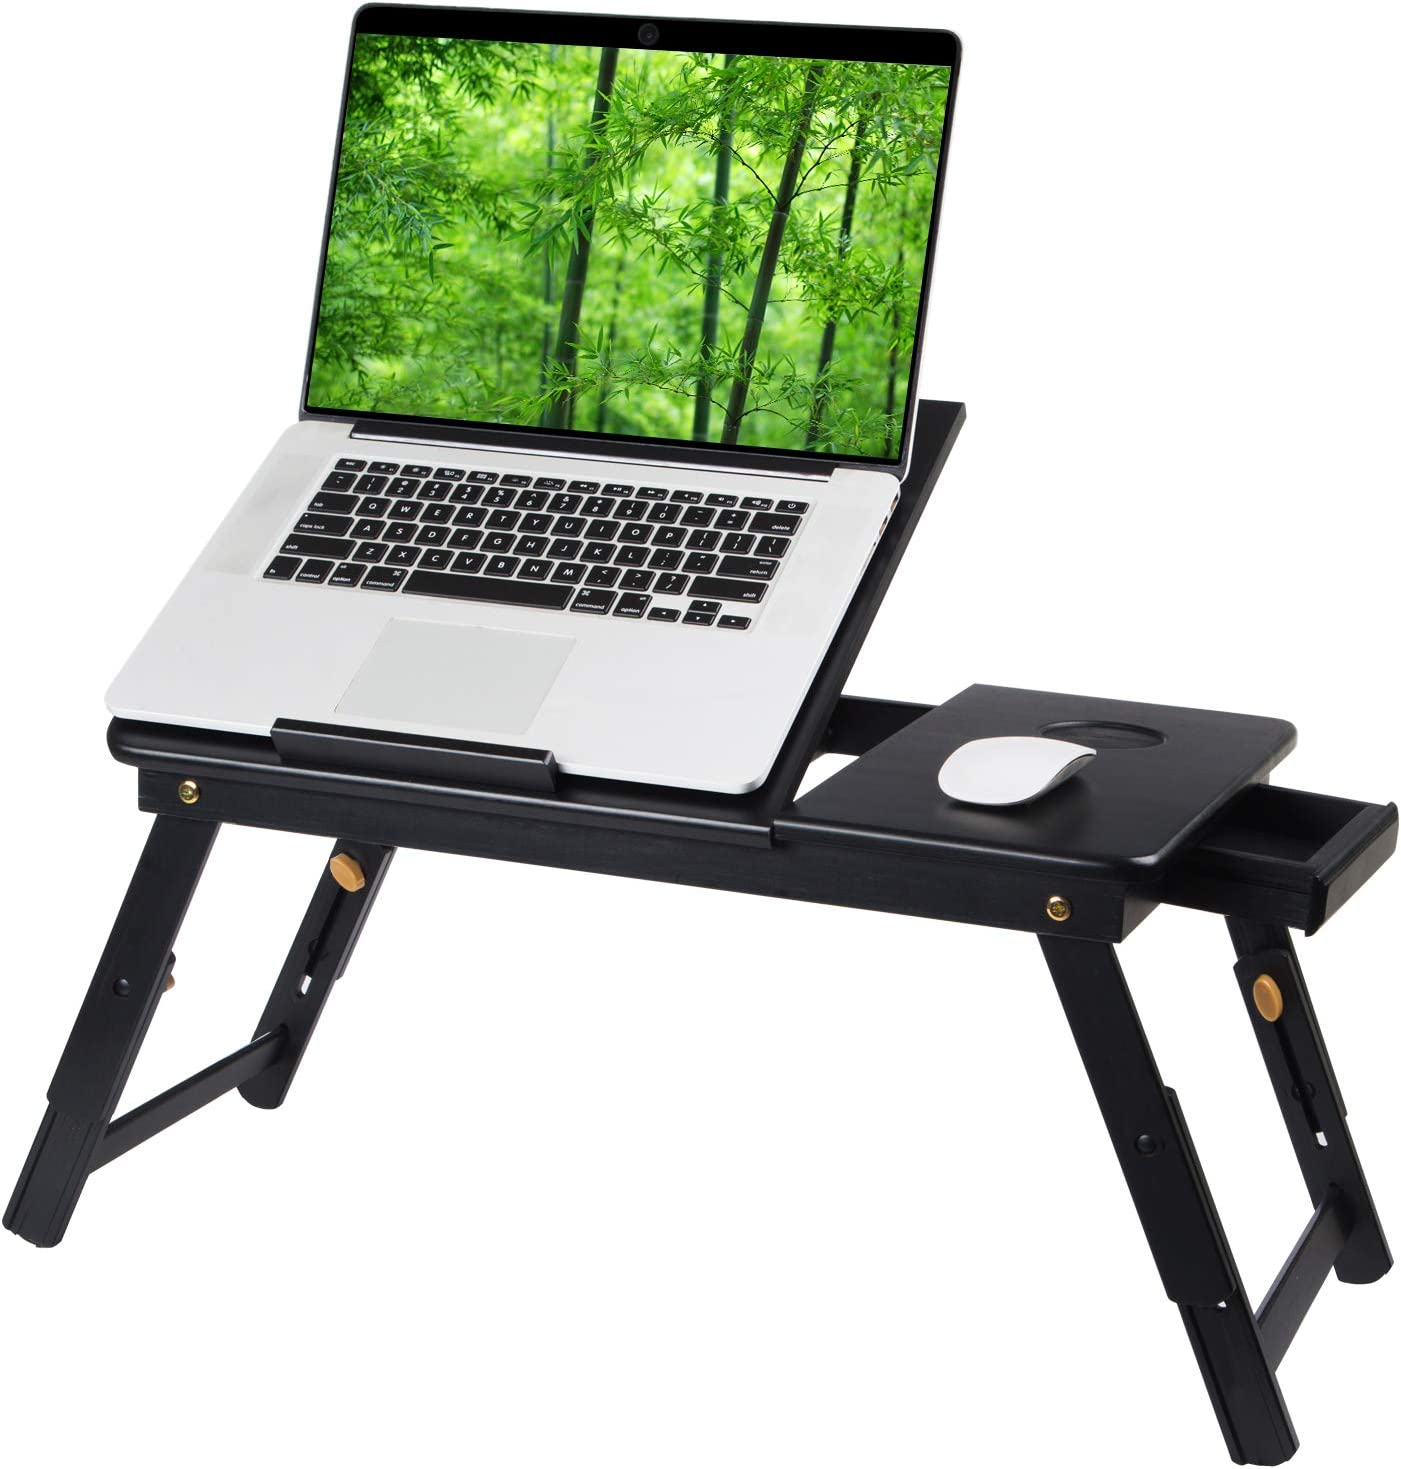 Bamboo Laptop Desk Tray,Breakfast Serving Bed Trays Table, Adjustable Foldable with Flip Top and Legs, Computer Stand with Drawer,Black